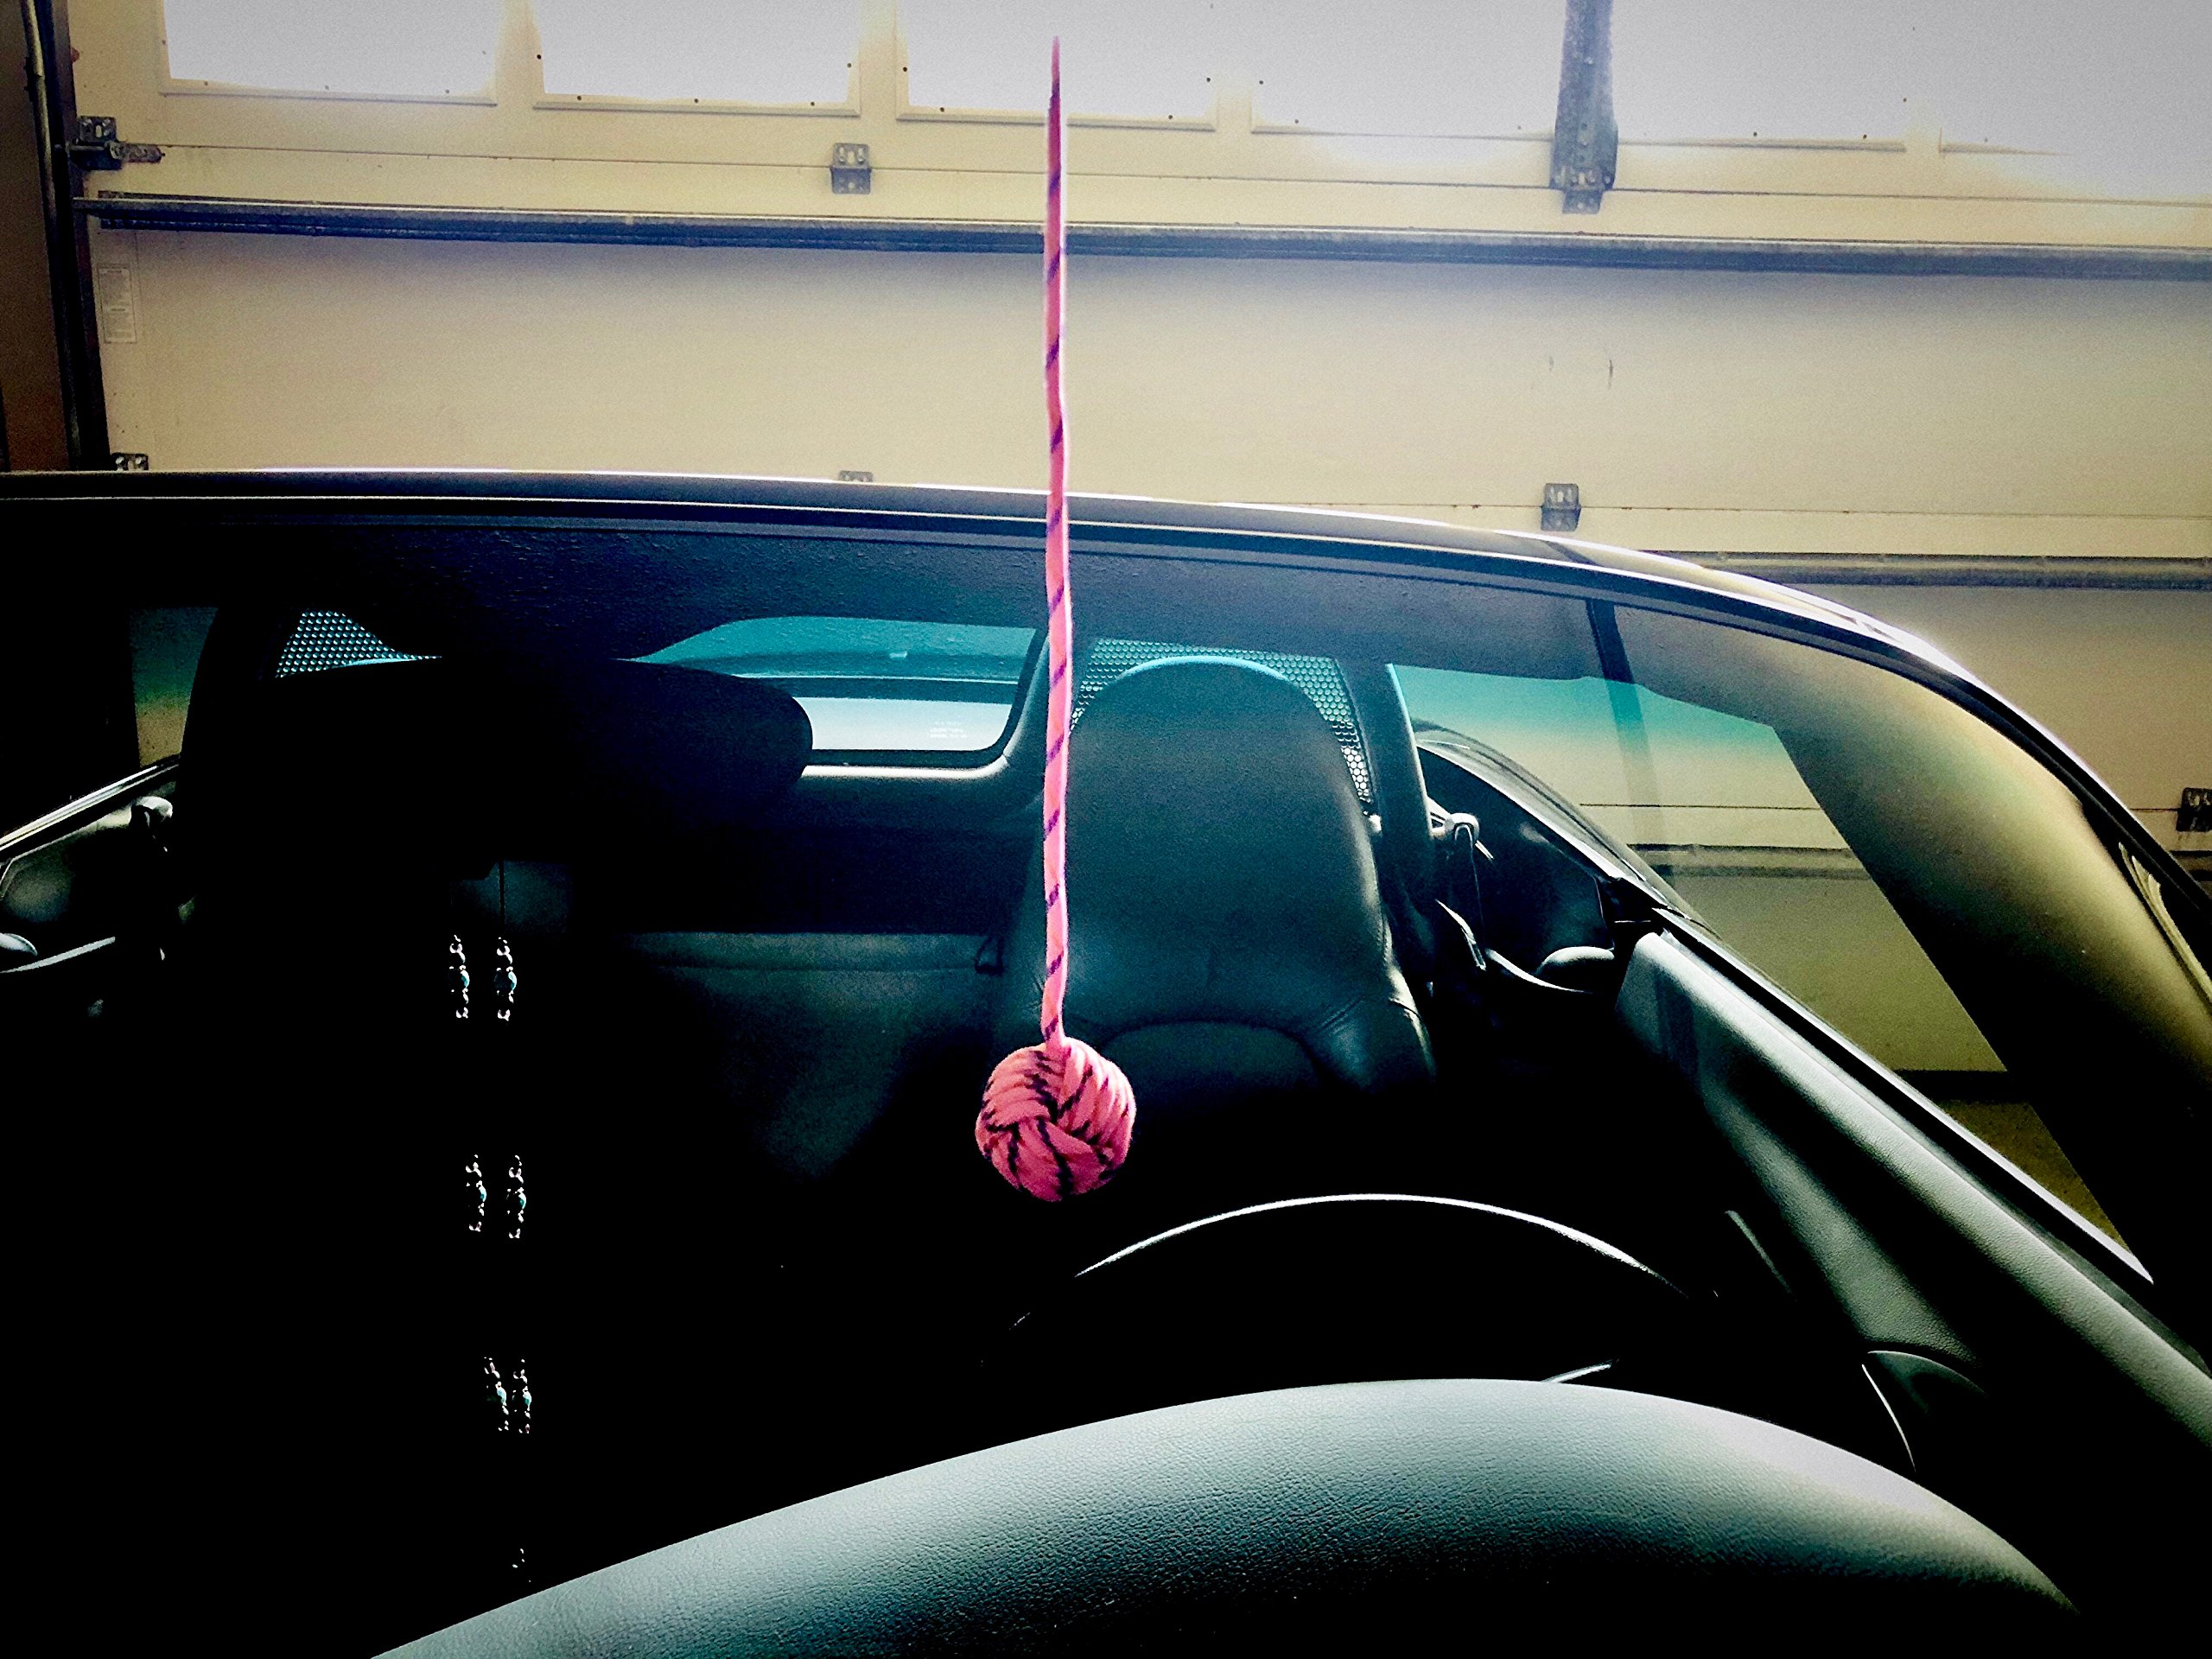 BallPahk Pink Adjustable Parking Aid | Makes Parking In Your Garage Easy | Simple Fun Multi Color Design | No Tools Installation | Quality Materials by BallPahk (Image #1)